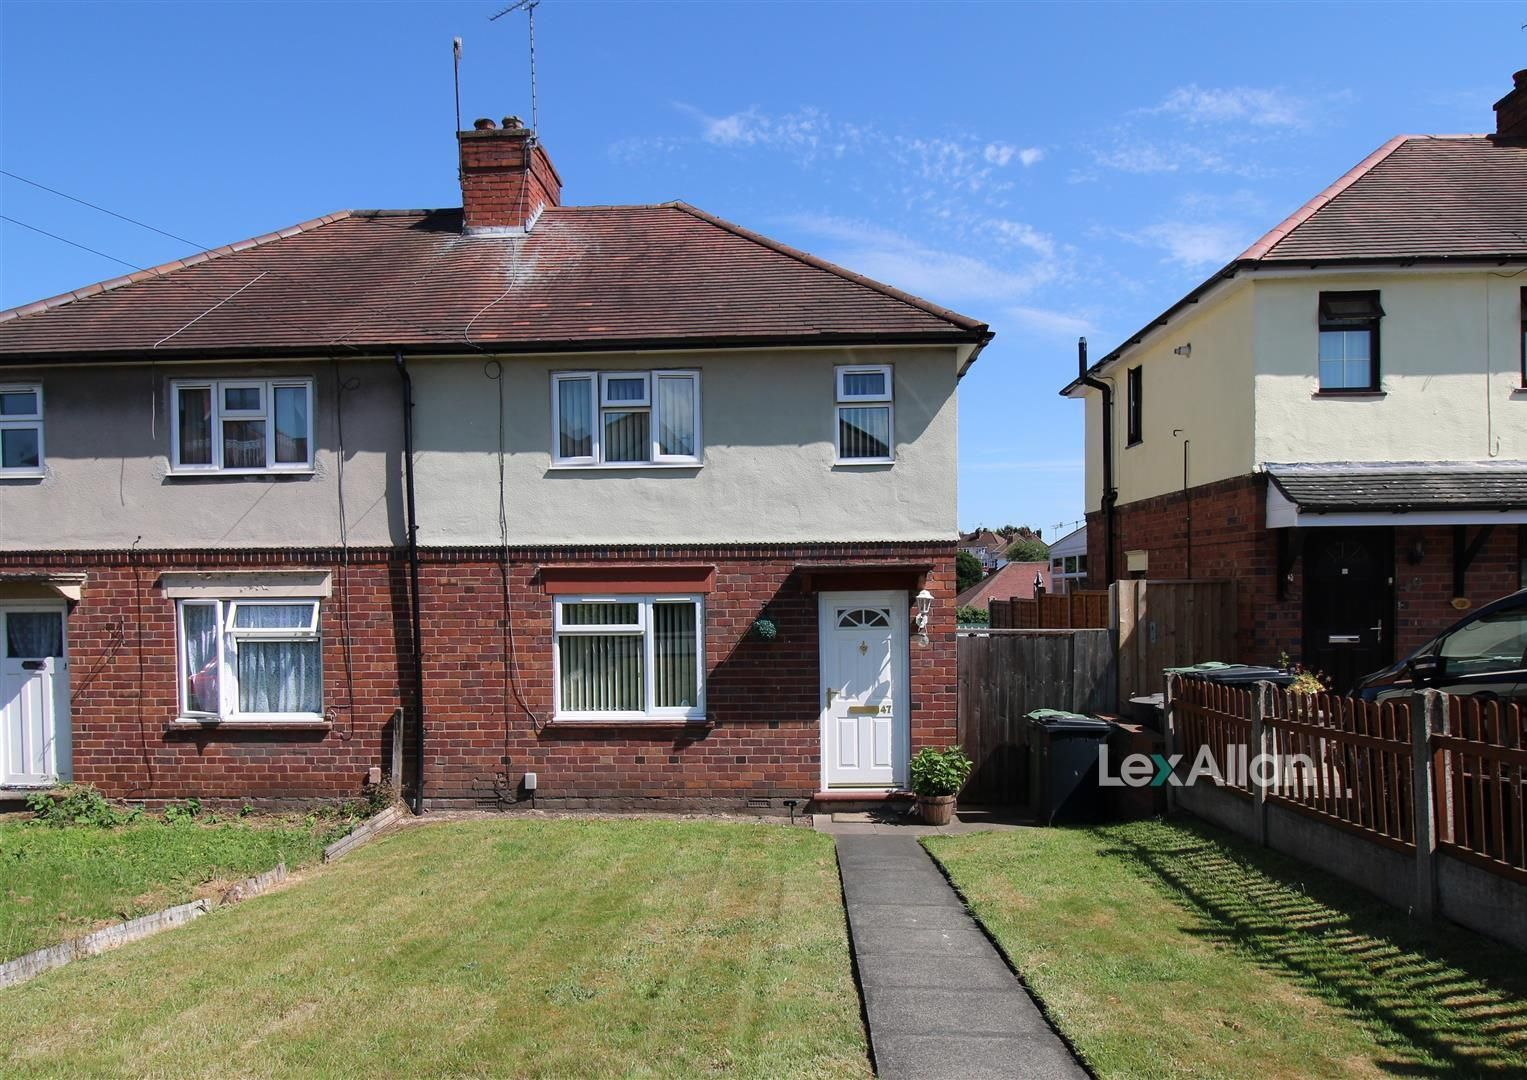 2 bed semi-detached for sale in Wordsley, DY8